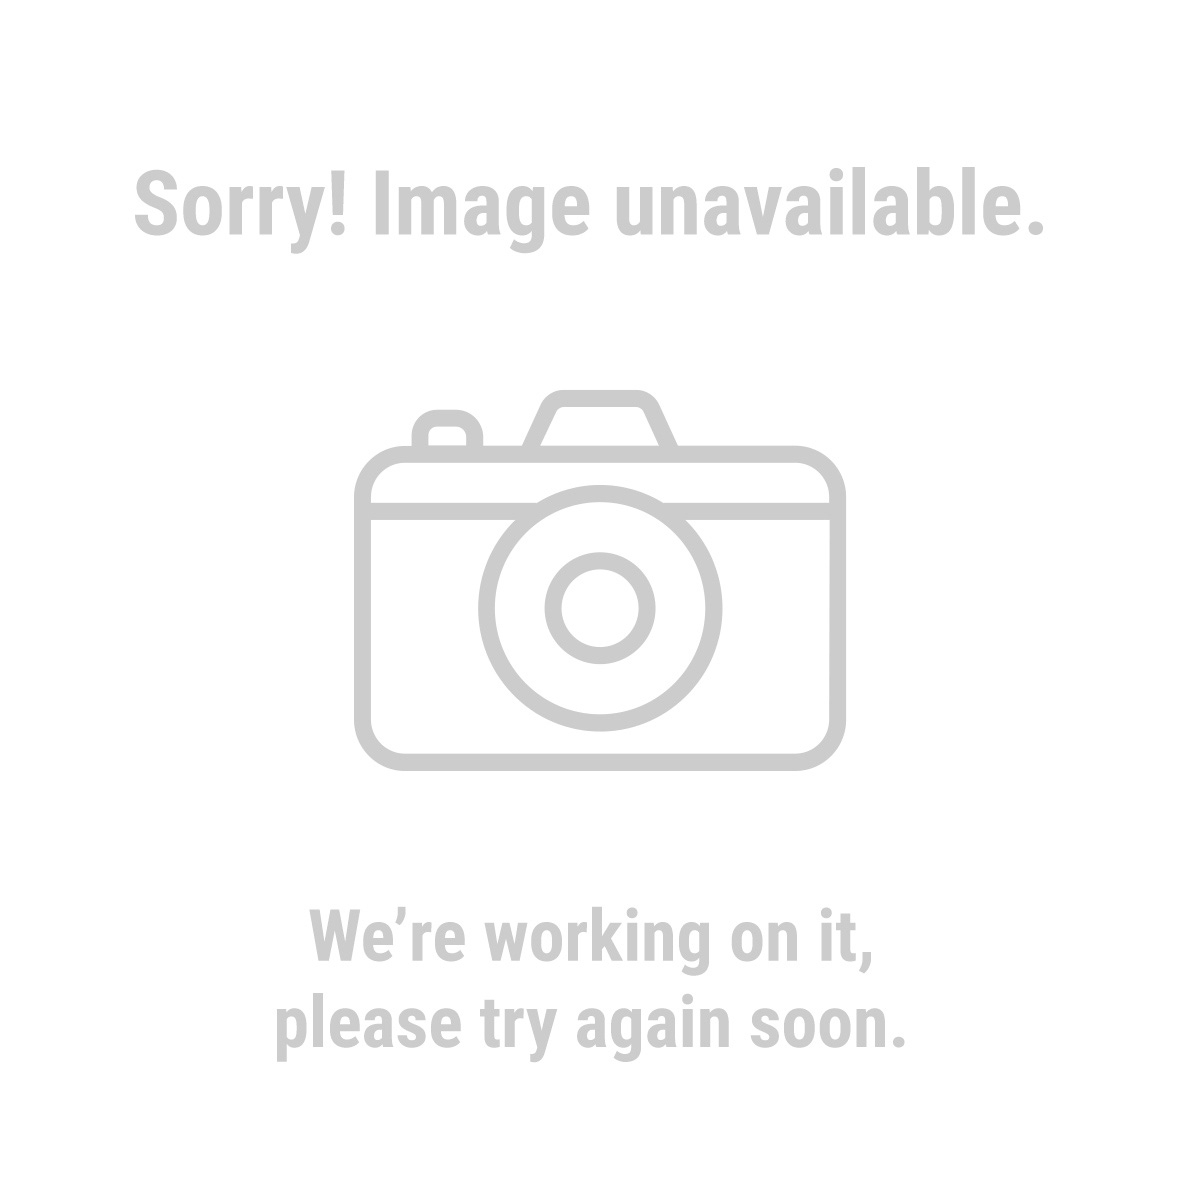 image_25155 22 hp (670cc) v twin horizontal shaft gas engine epa